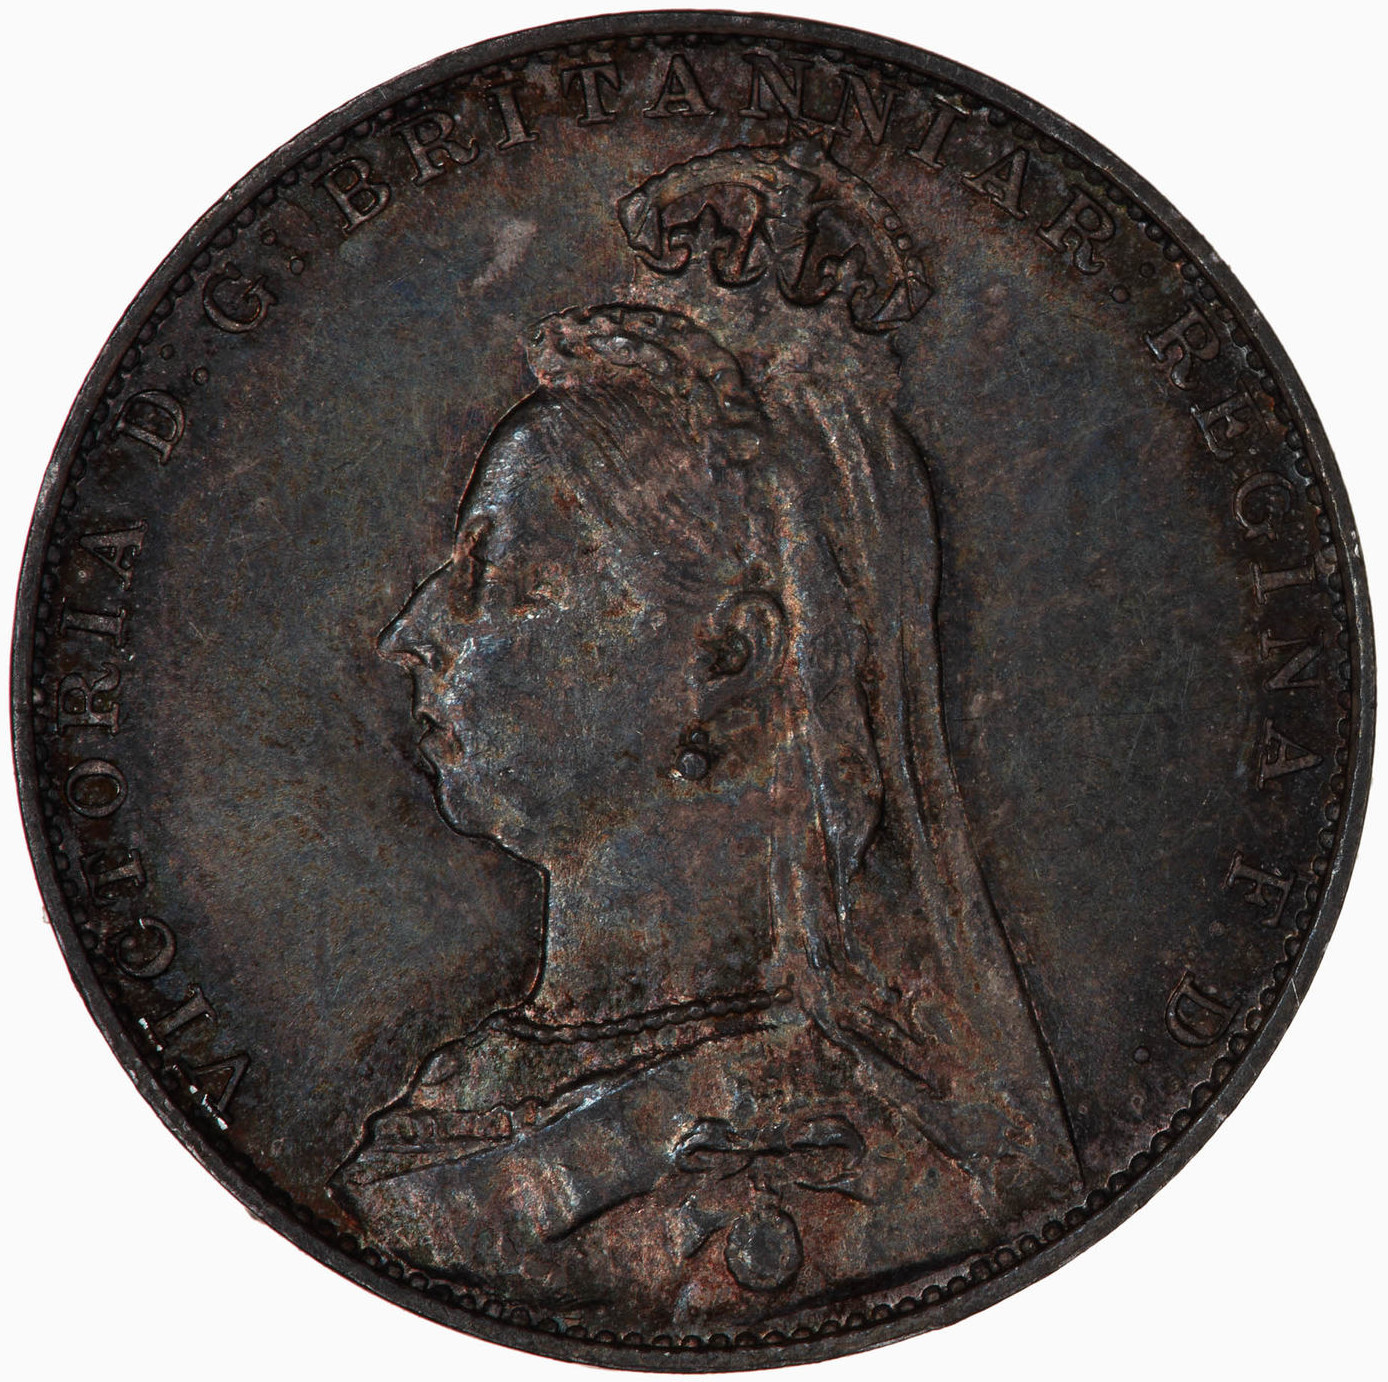 Fourpence 1892 (Maundy): Photo Coin - Groat (Maundy), Queen Victoria, Great Britain, 1892